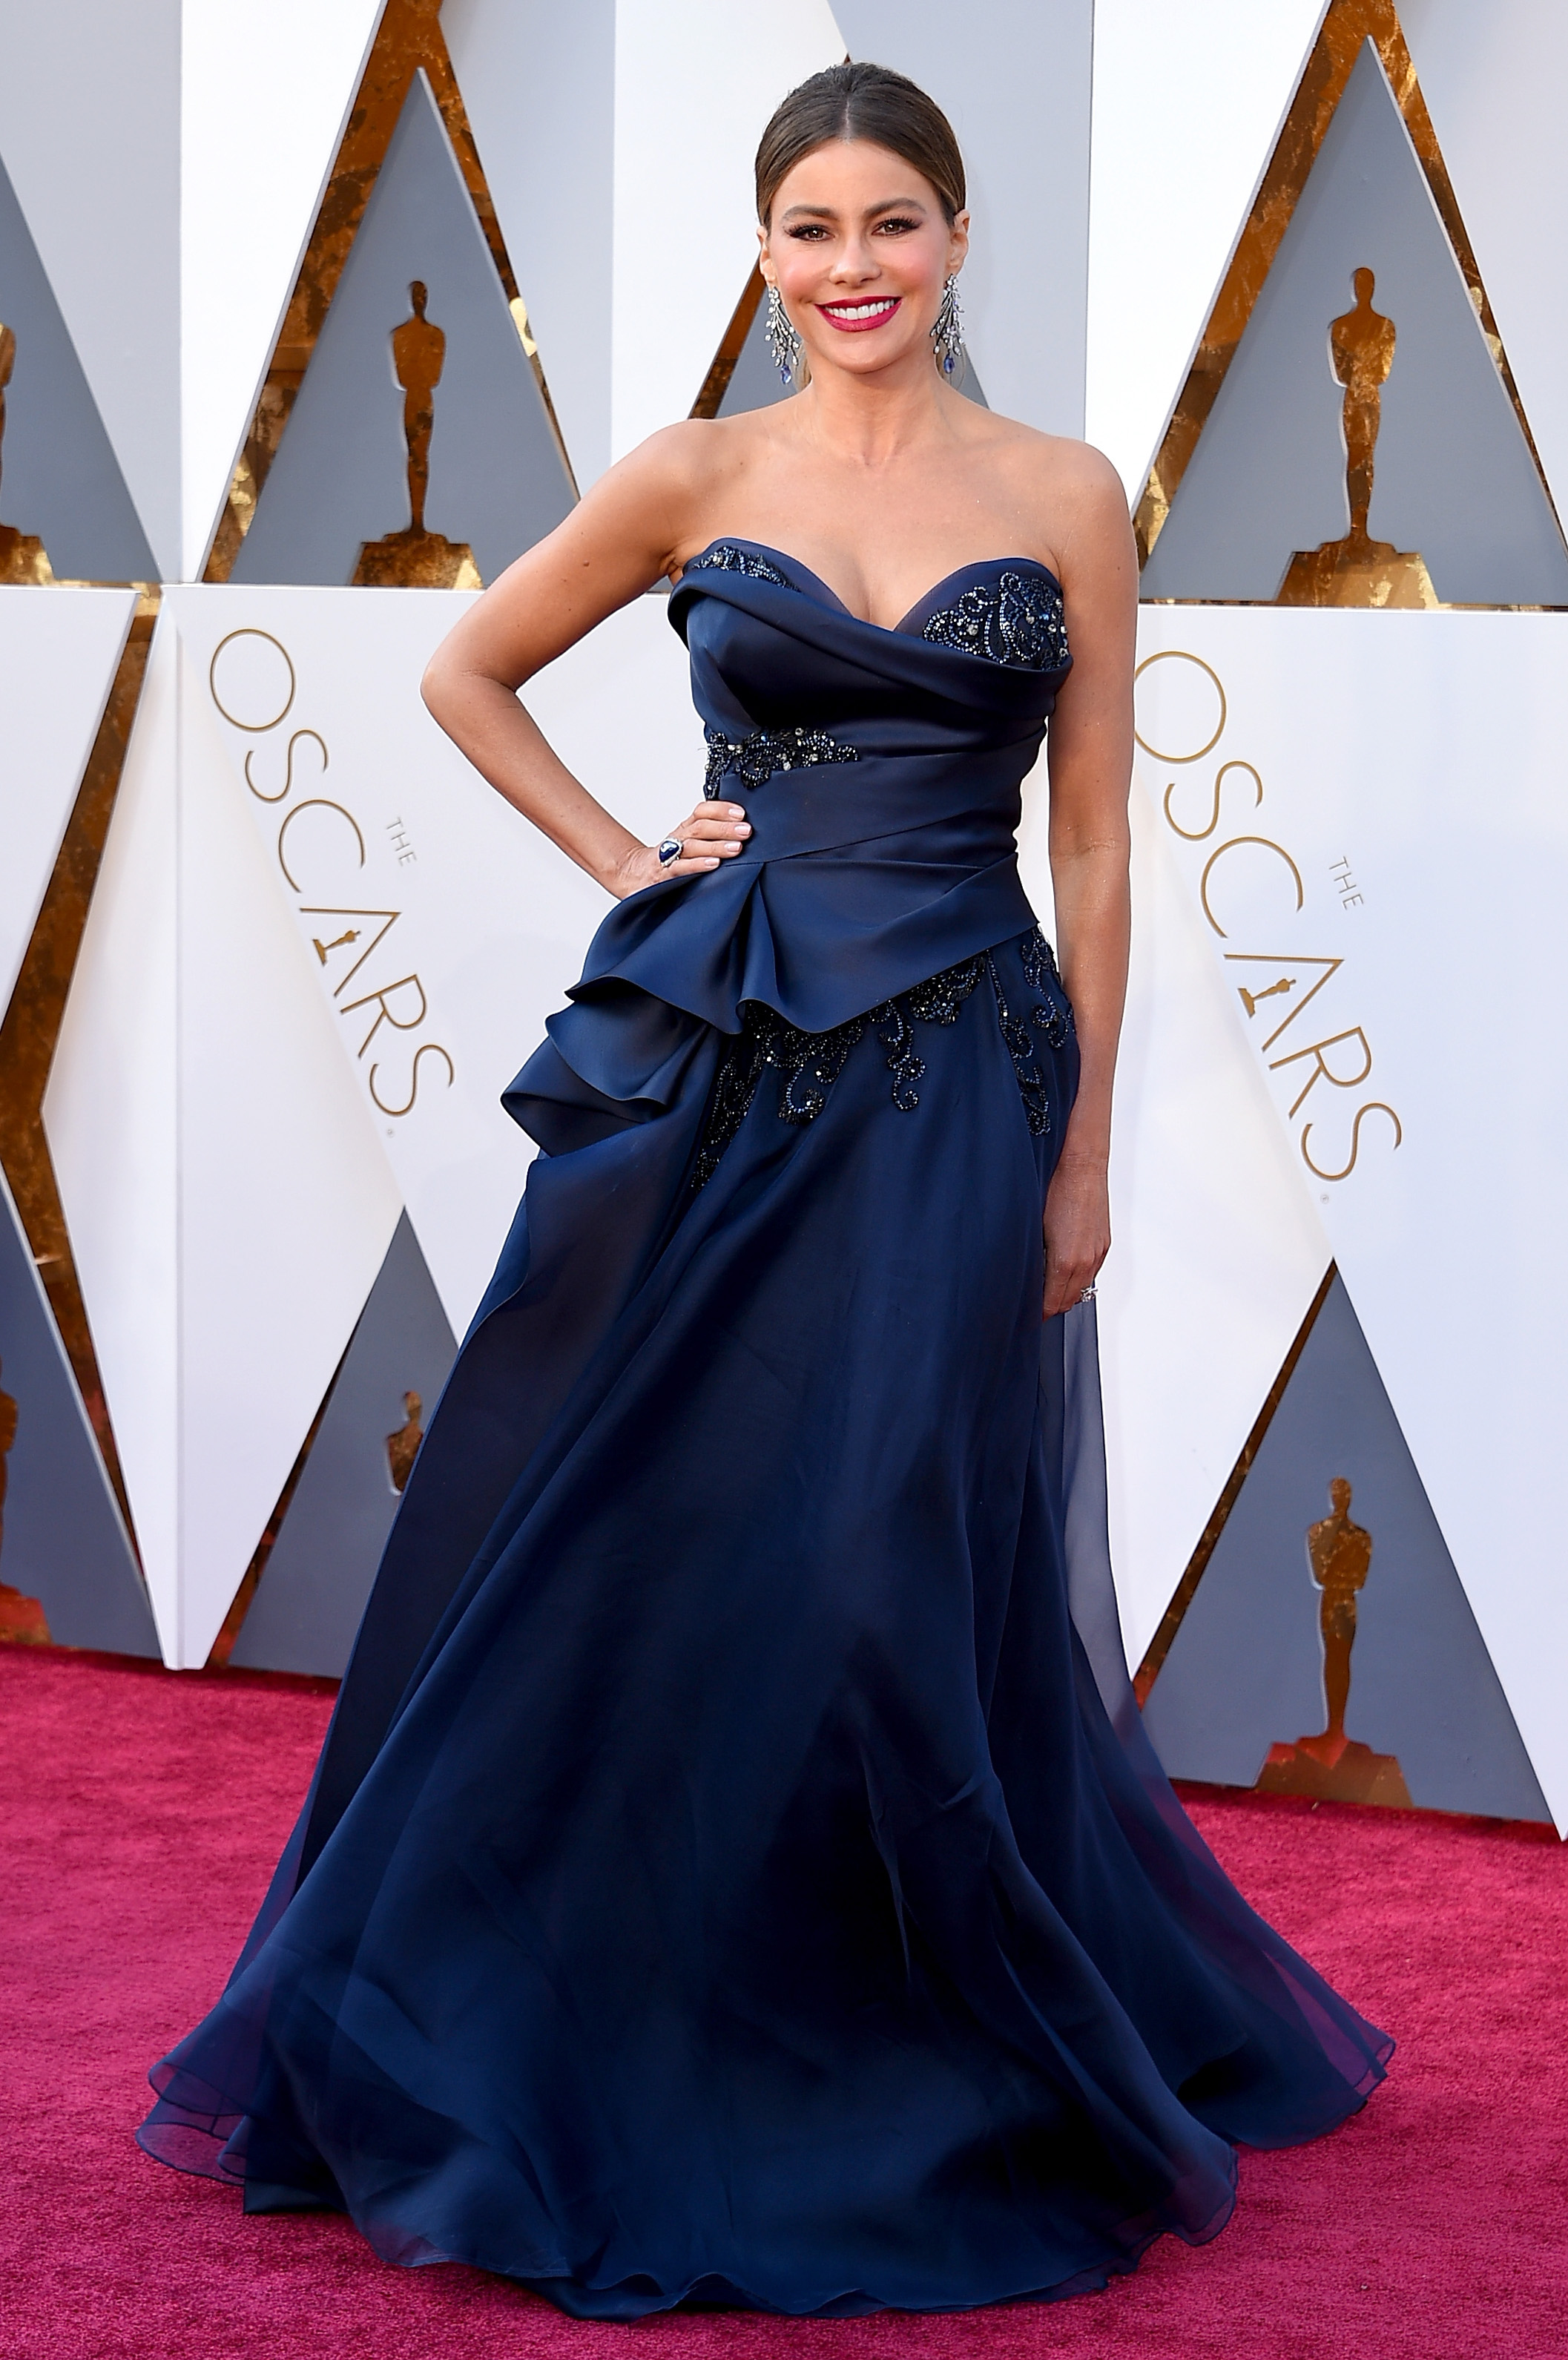 Sofia Vergara attends the 88th Annual Academy Awards on Feb. 28, 2016 in Hollywood, Calif.